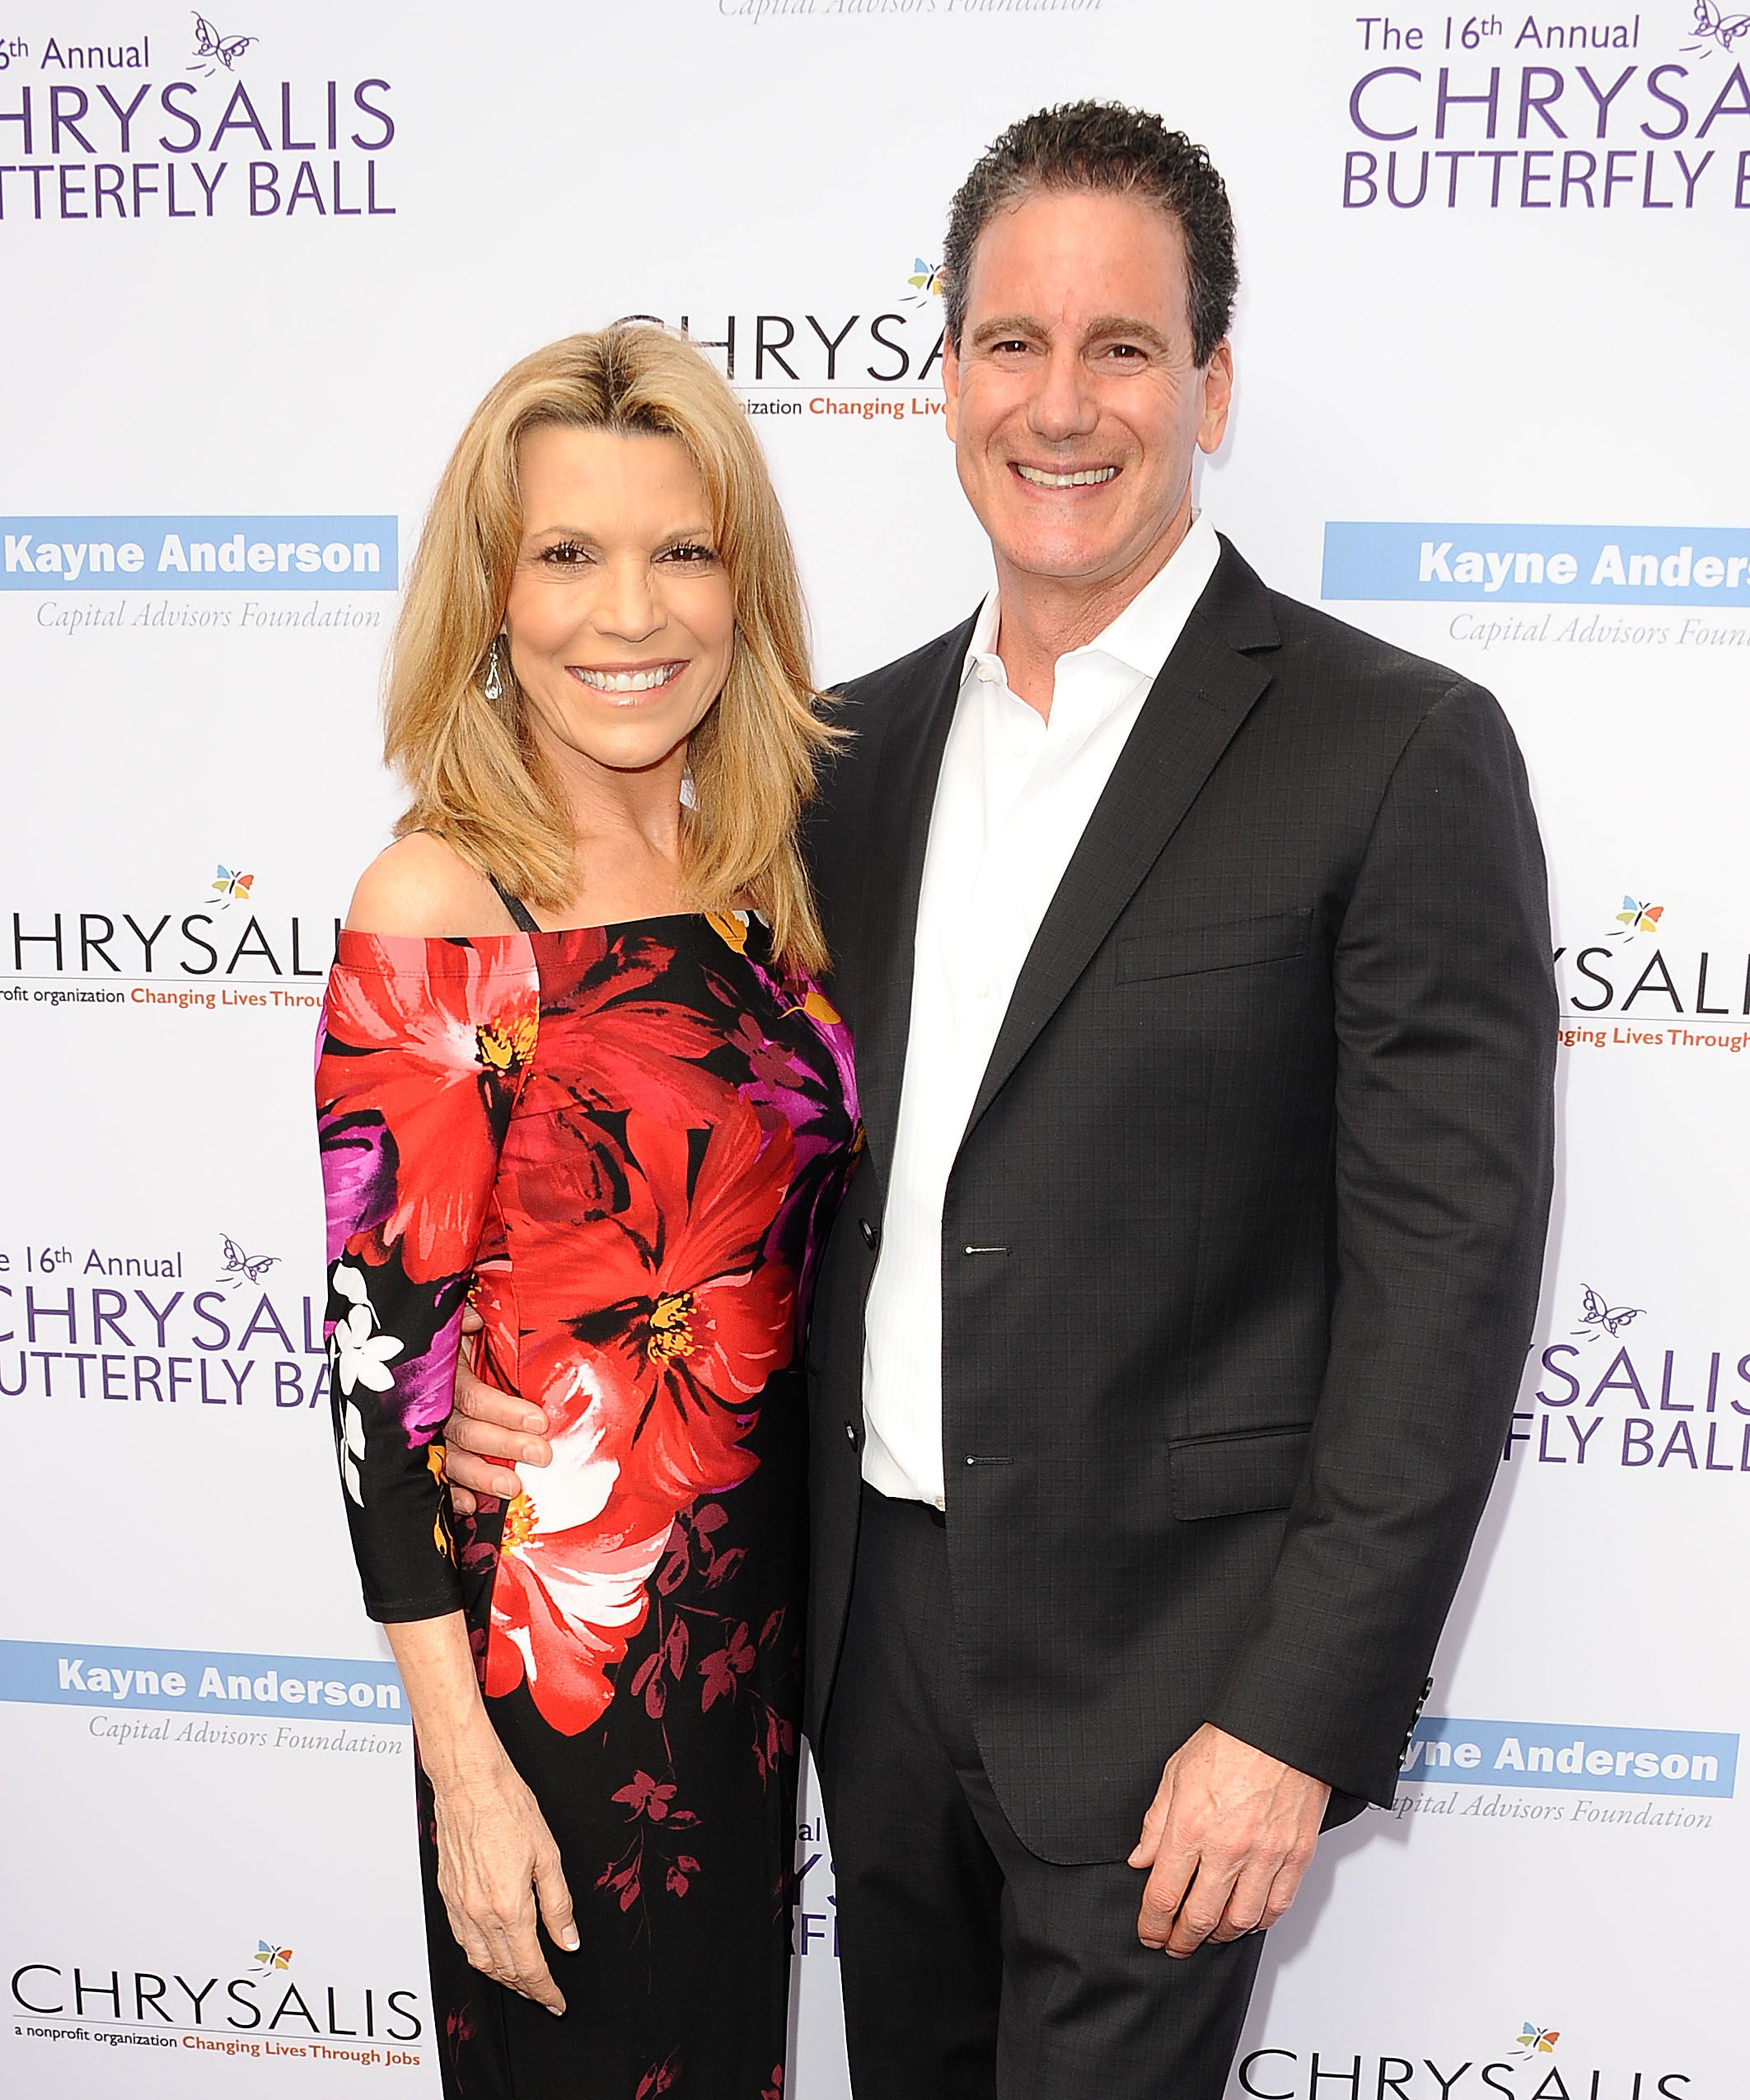 Vanna White and John Donaldson at the 16th annual Chrysalis Butterfly Ball on June 3, 2017 | Photo: Getty Images